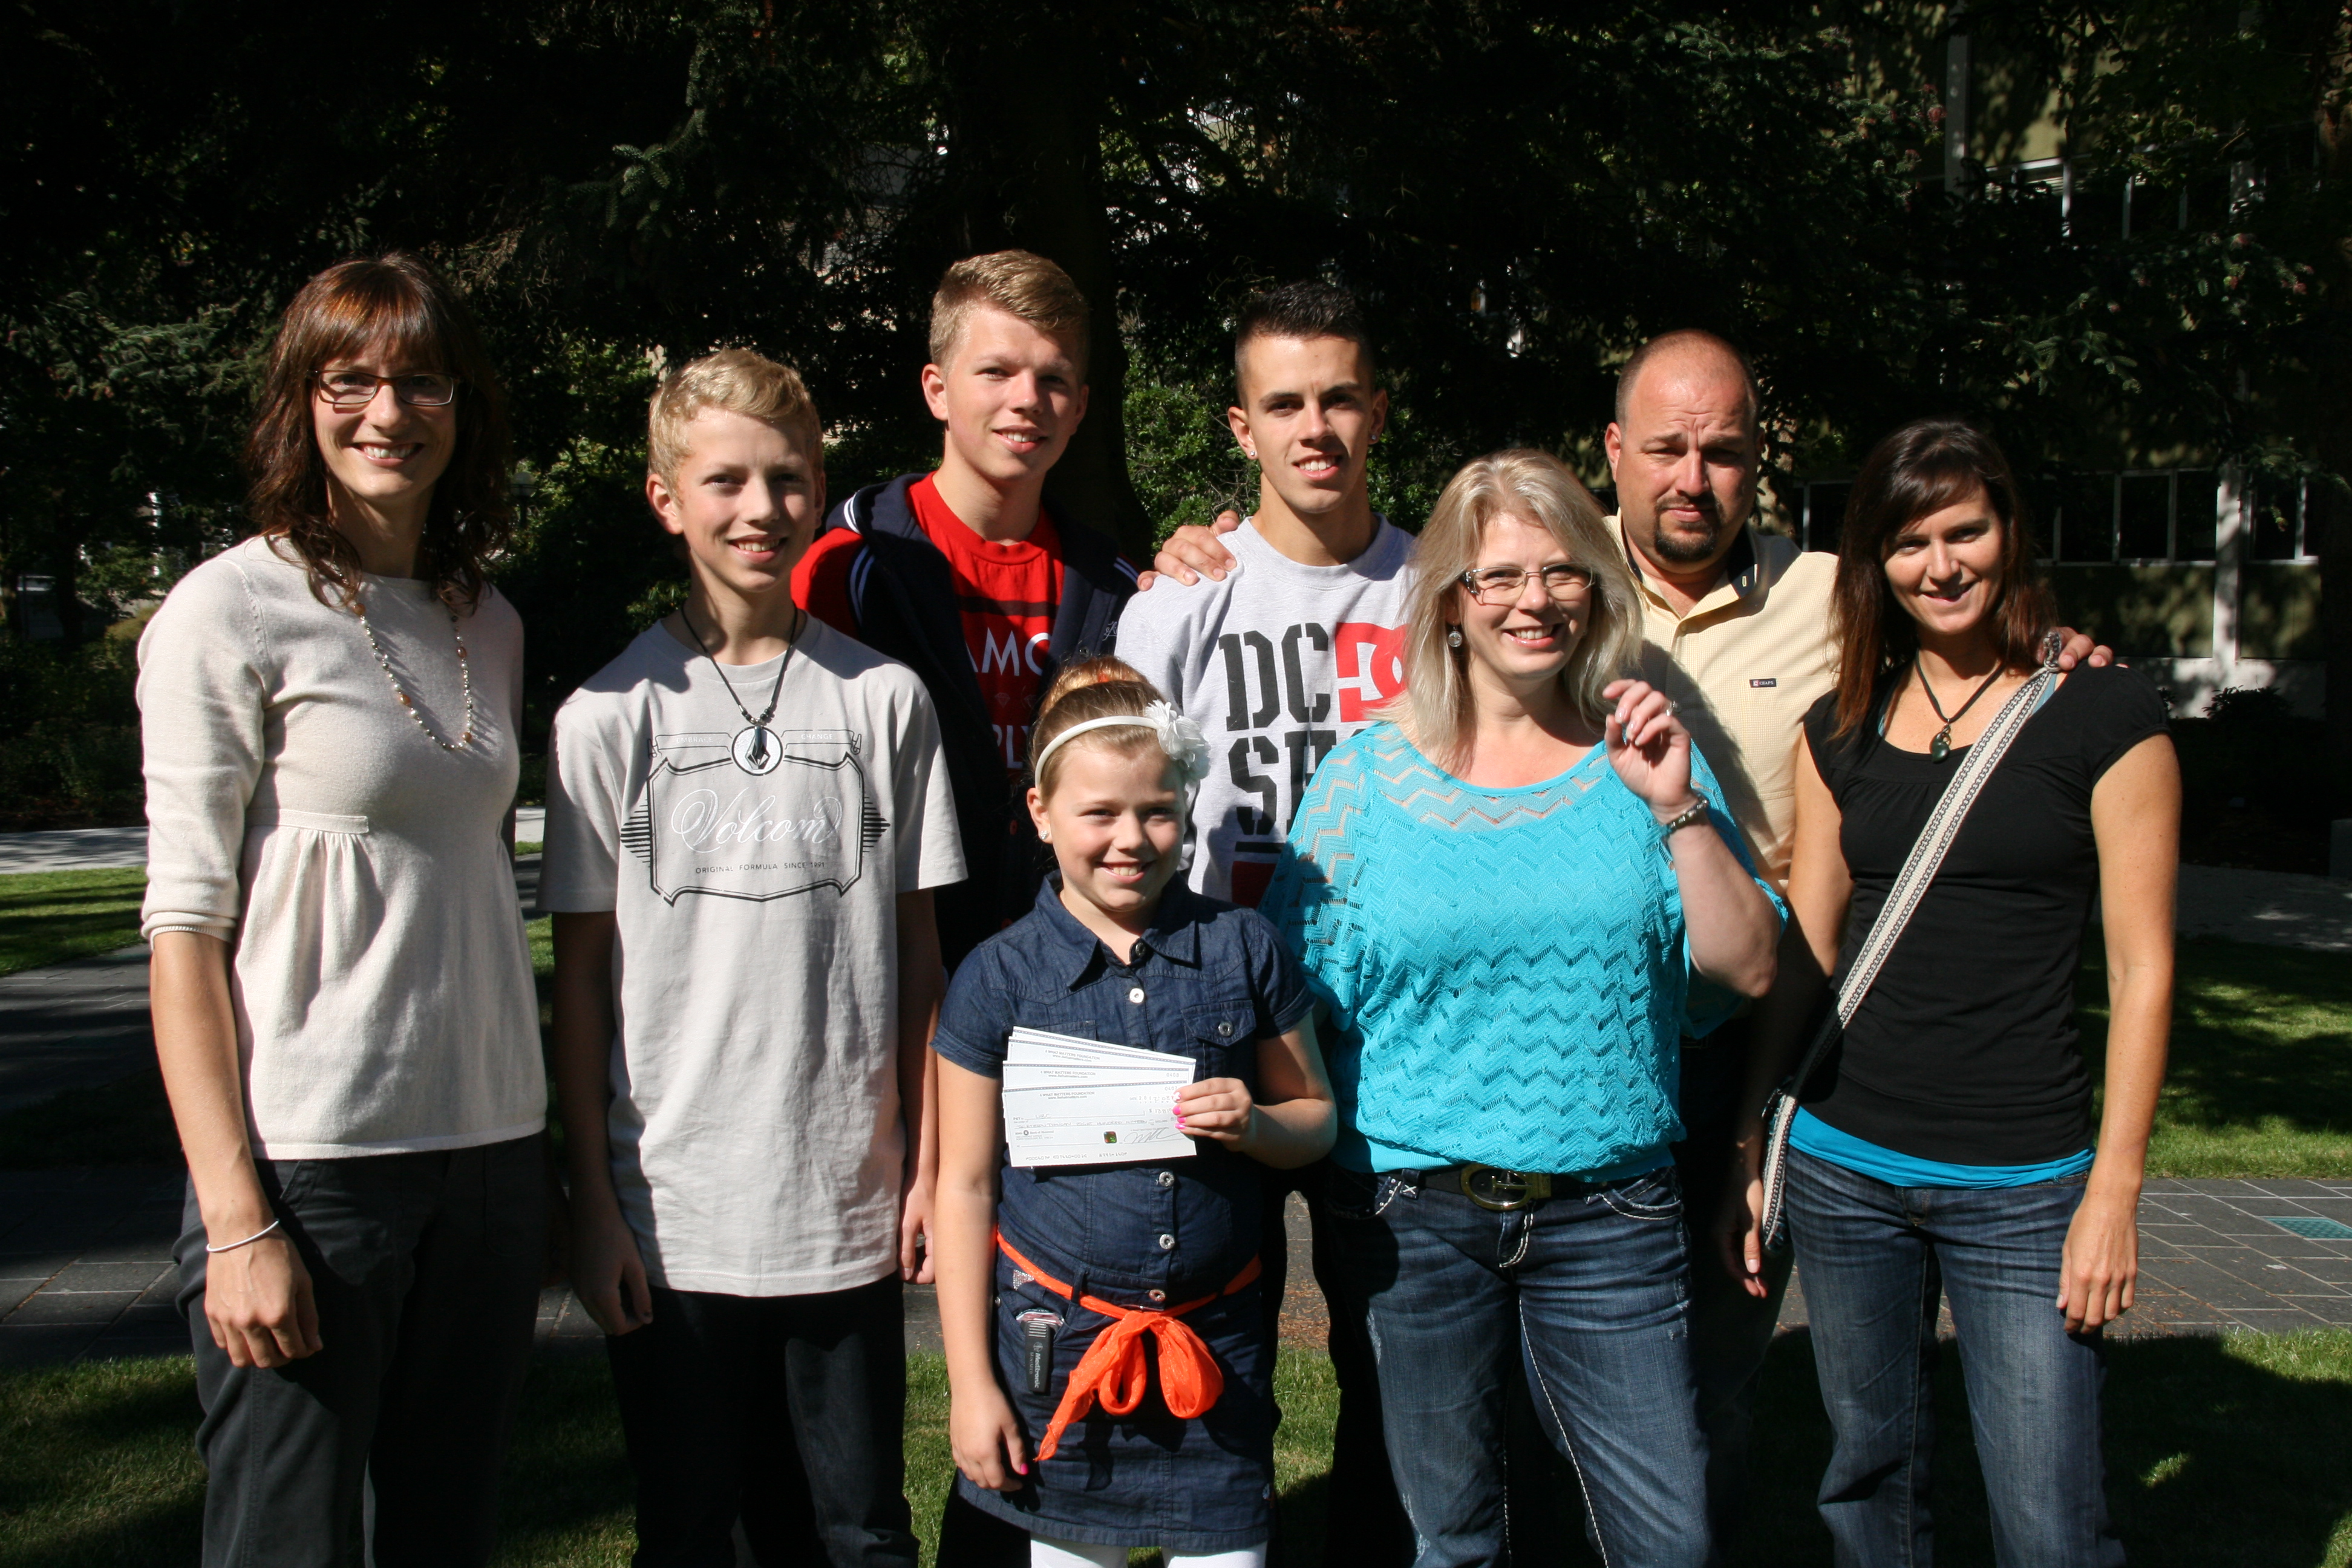 VanderHoek Family Raises $32,013 for Diabetes Research at the UBC Faculty of Medicine